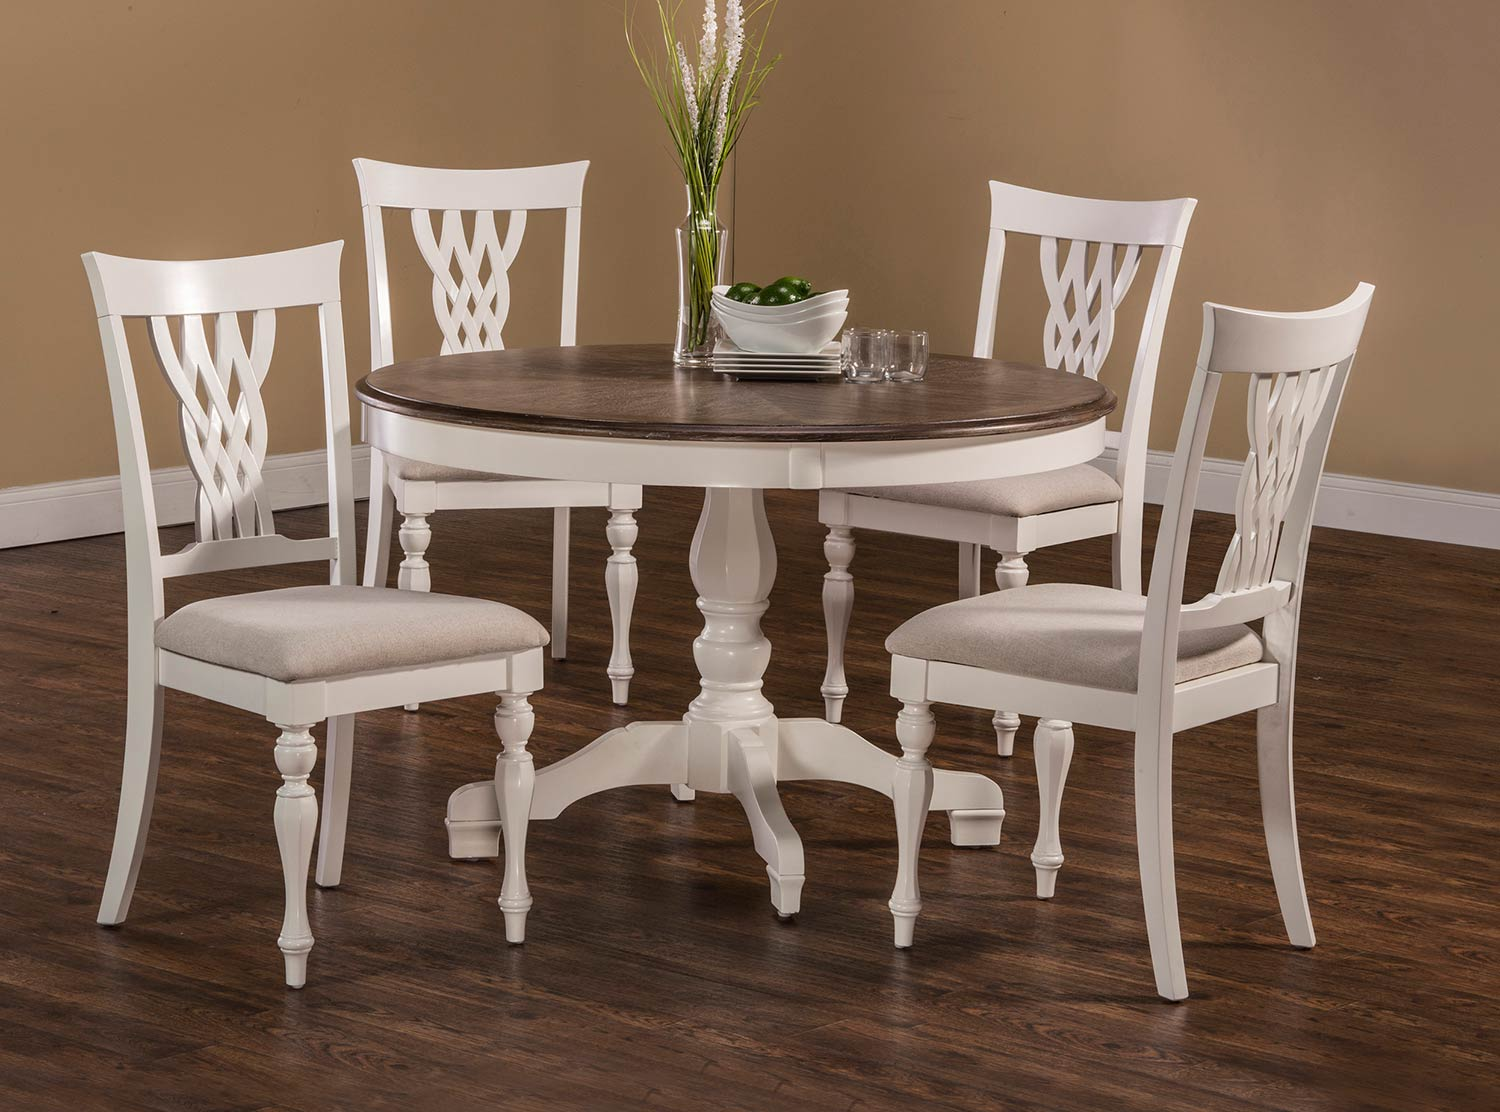 Hillsdale Bayberry Embassy 5 Piece Round Dining Set